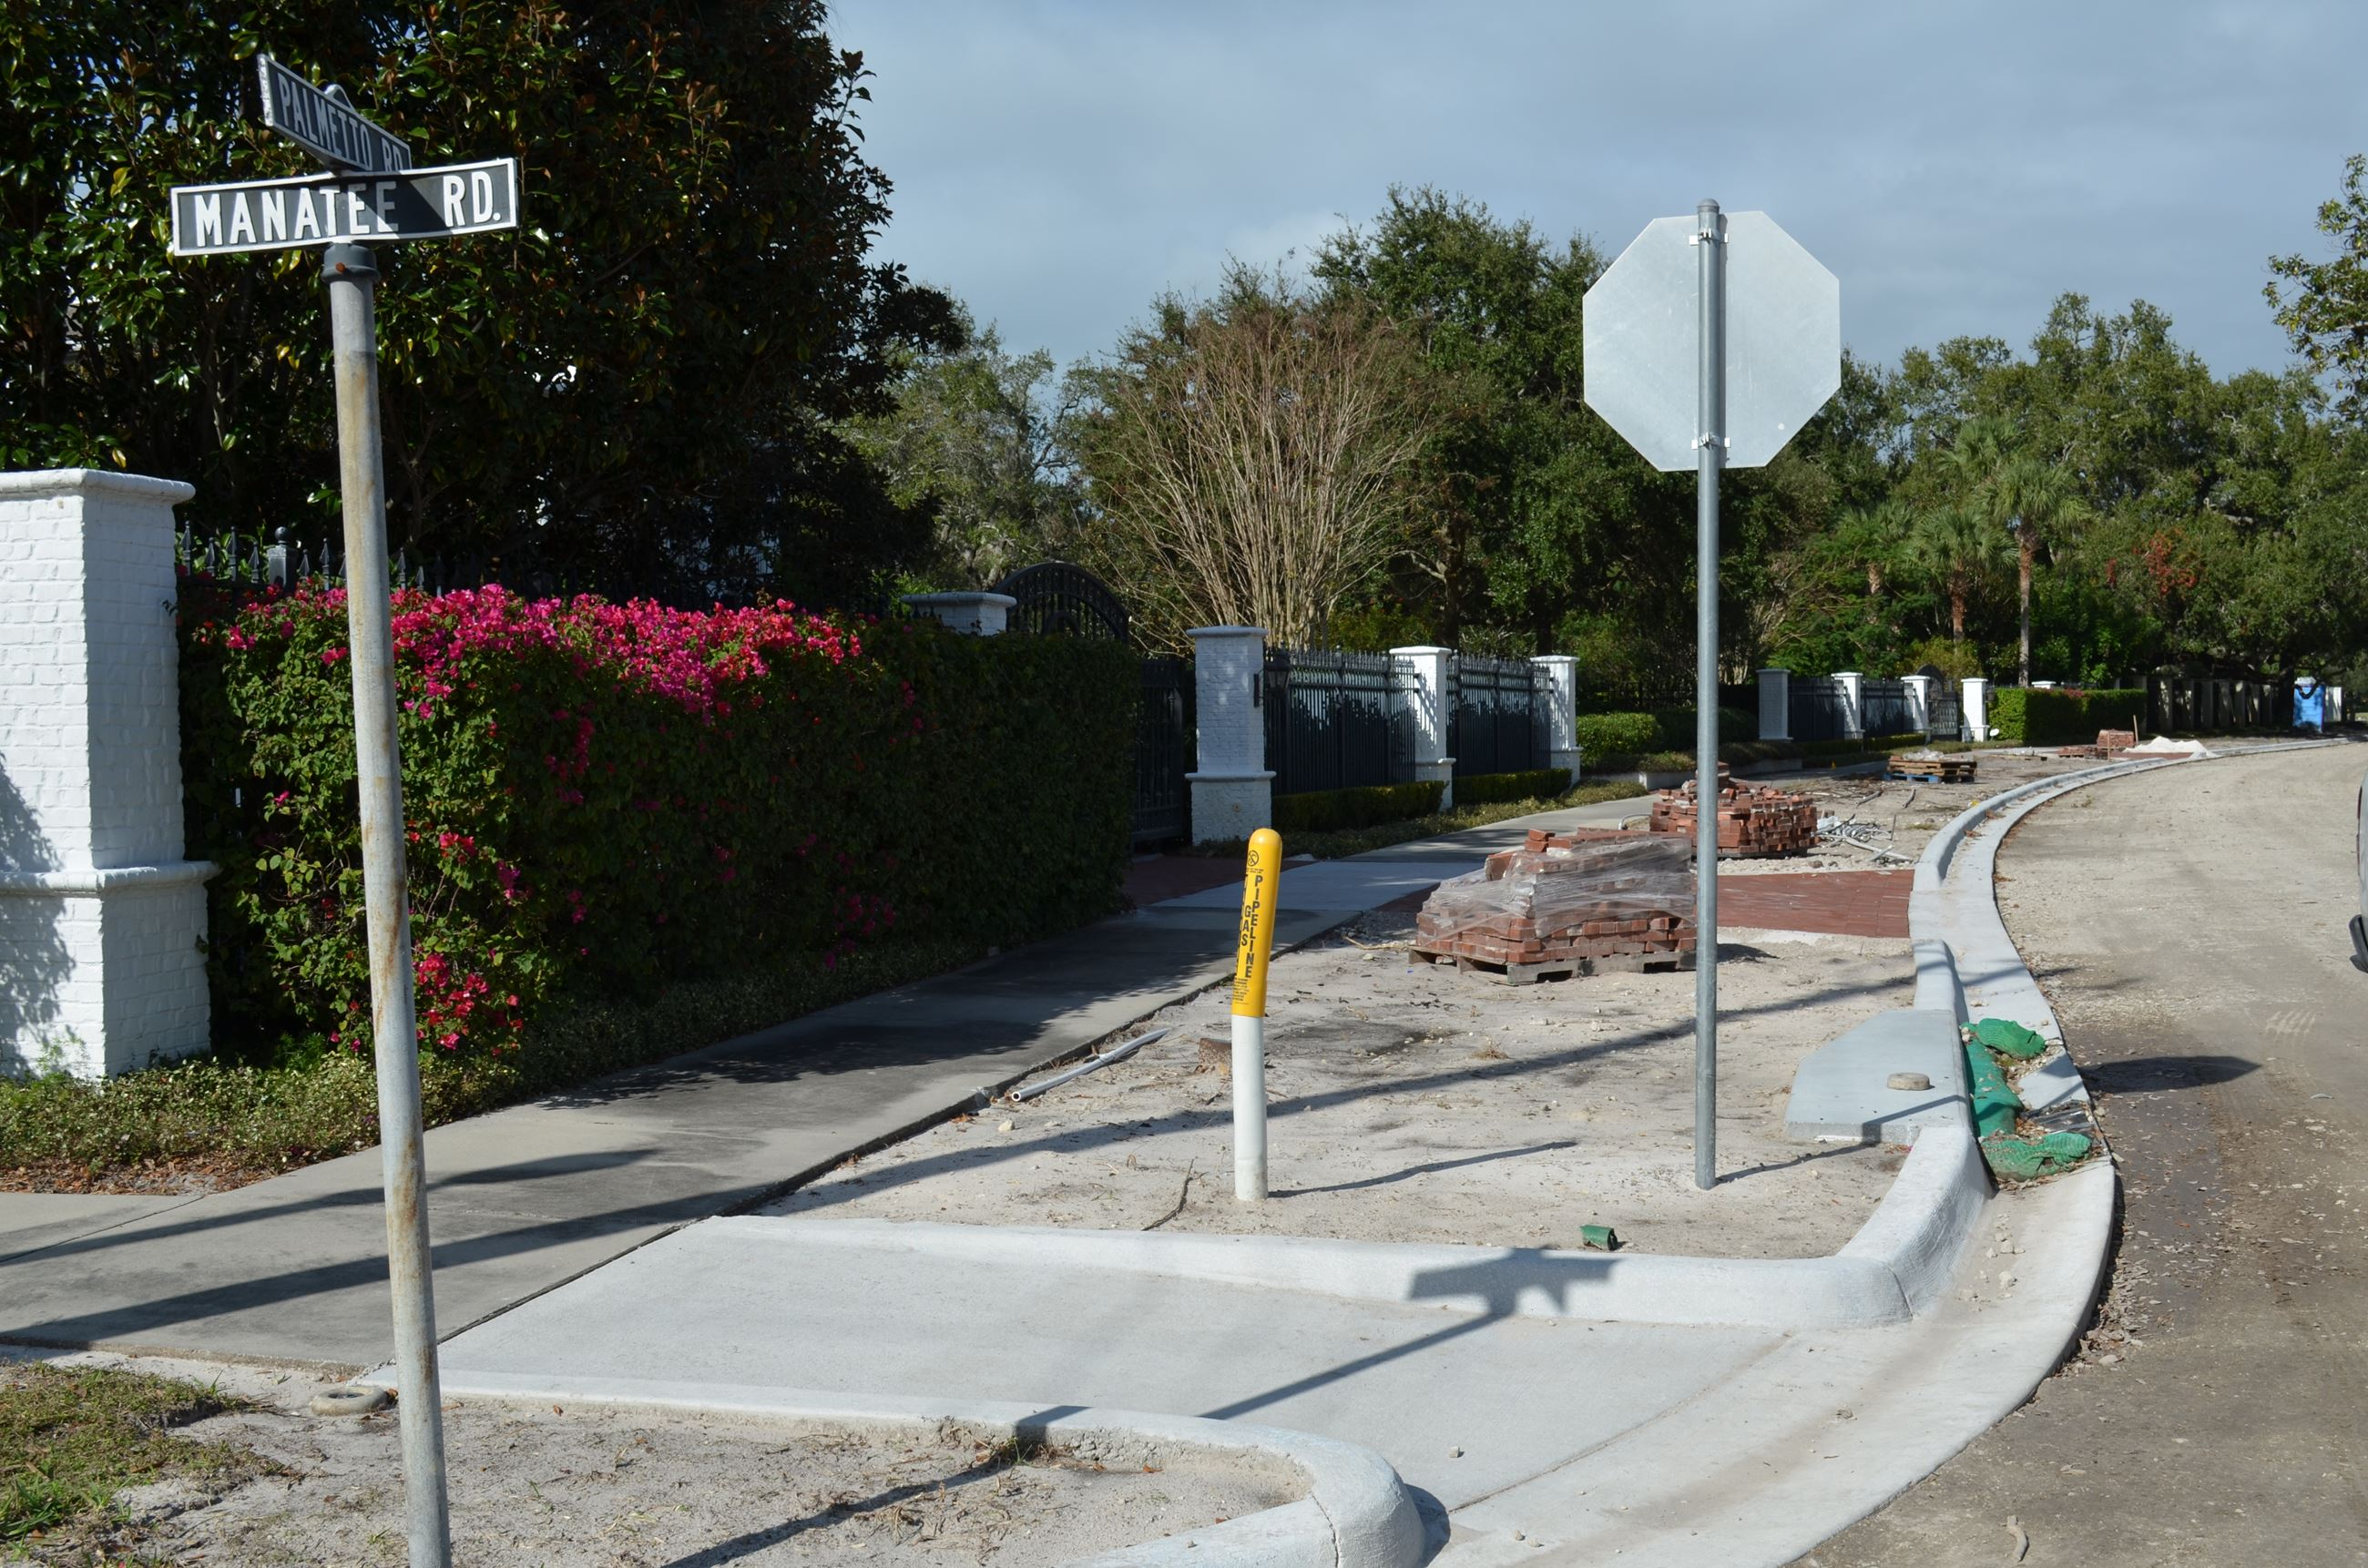 The intersection of Bayview Dr. and Manatee Rd. under construction. New sidewalks, ramps, and curbs